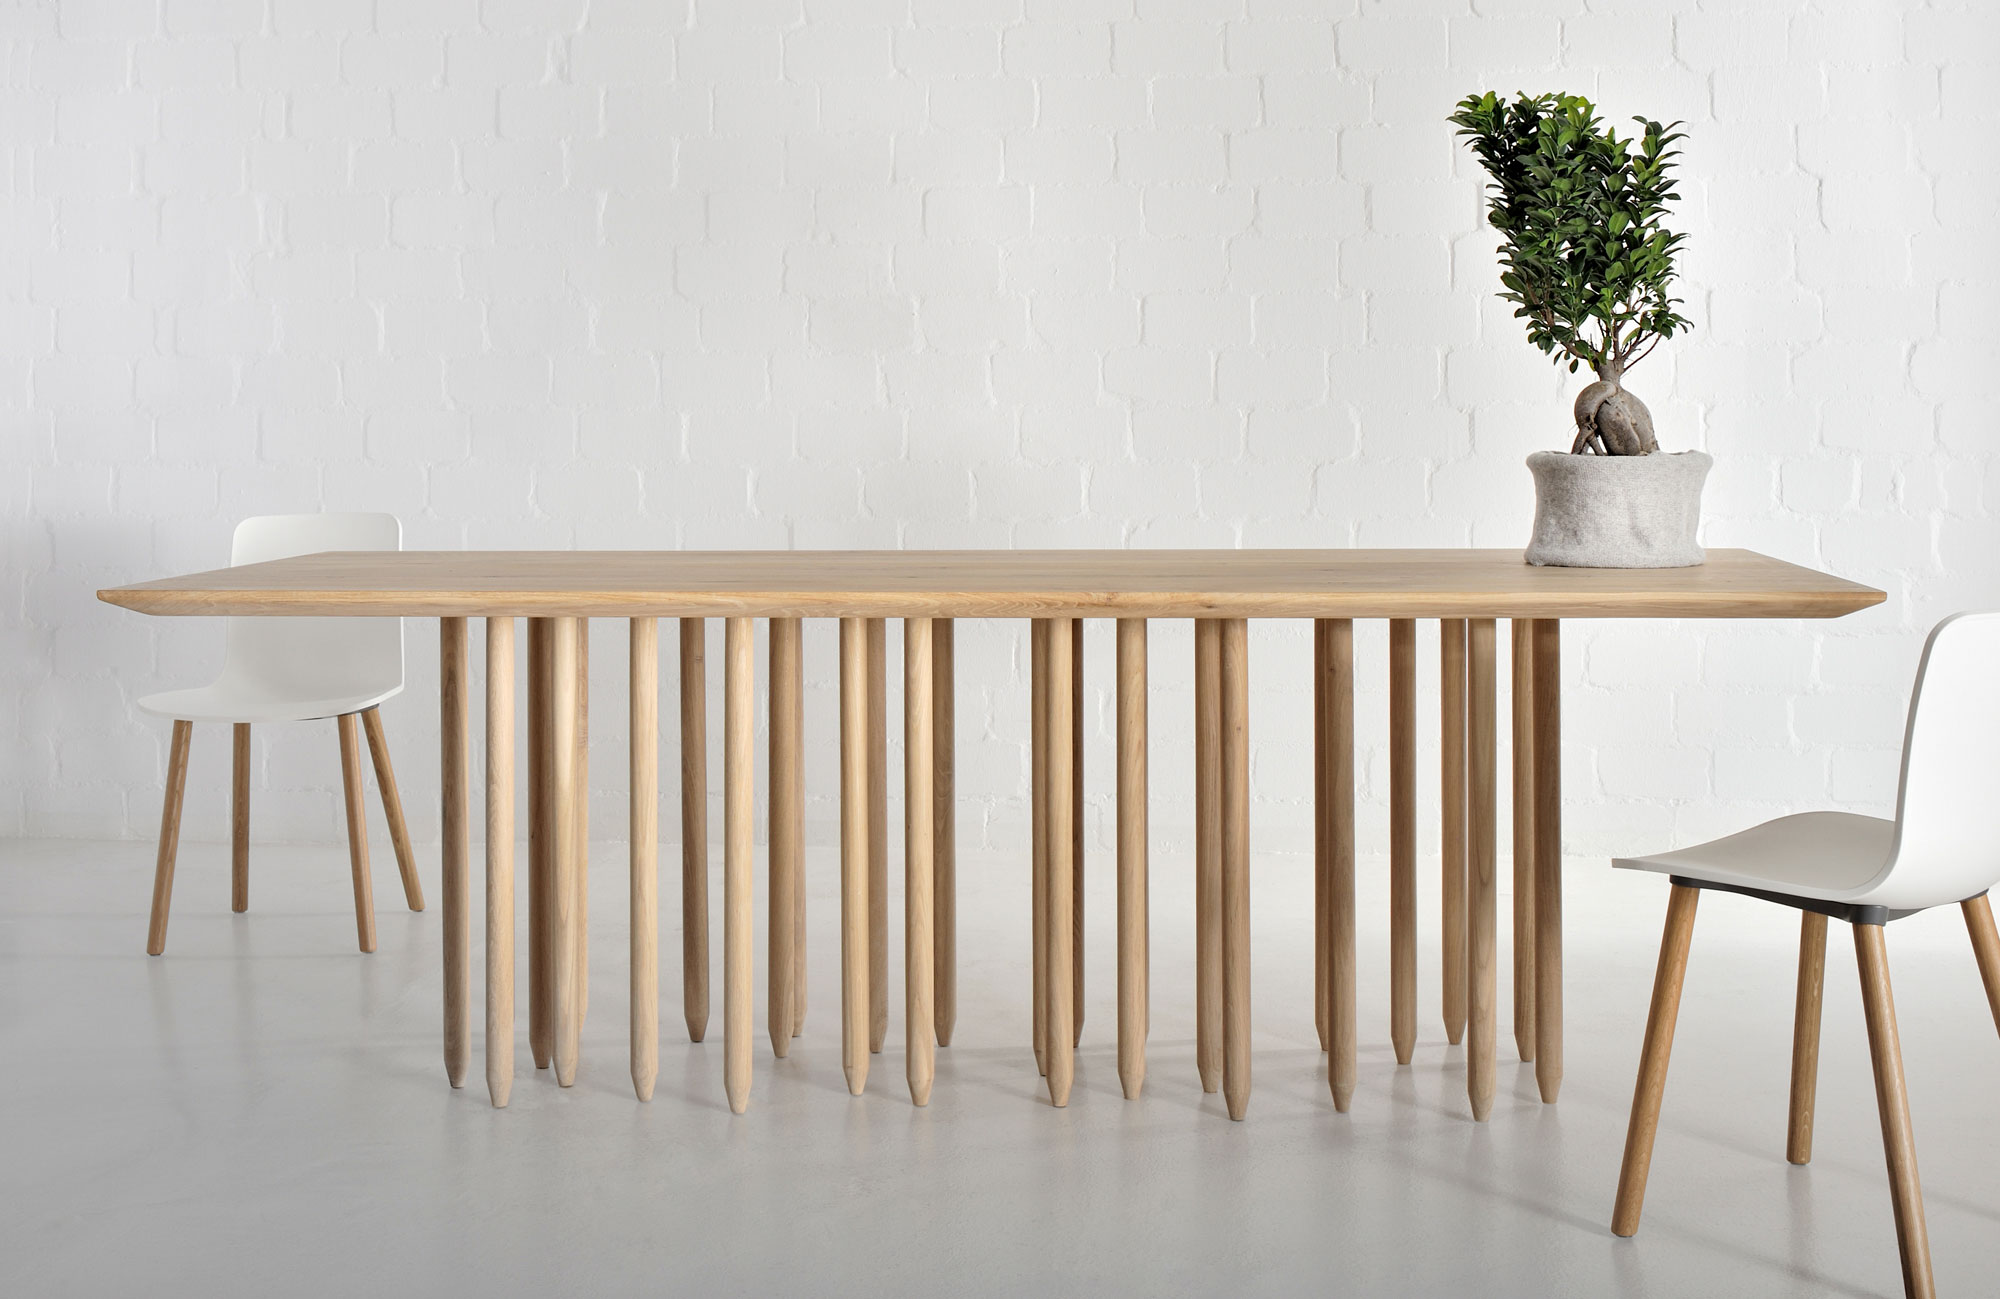 Designer Solid Wood Table STILUS 4387 custom made in solid wood by vitamin design